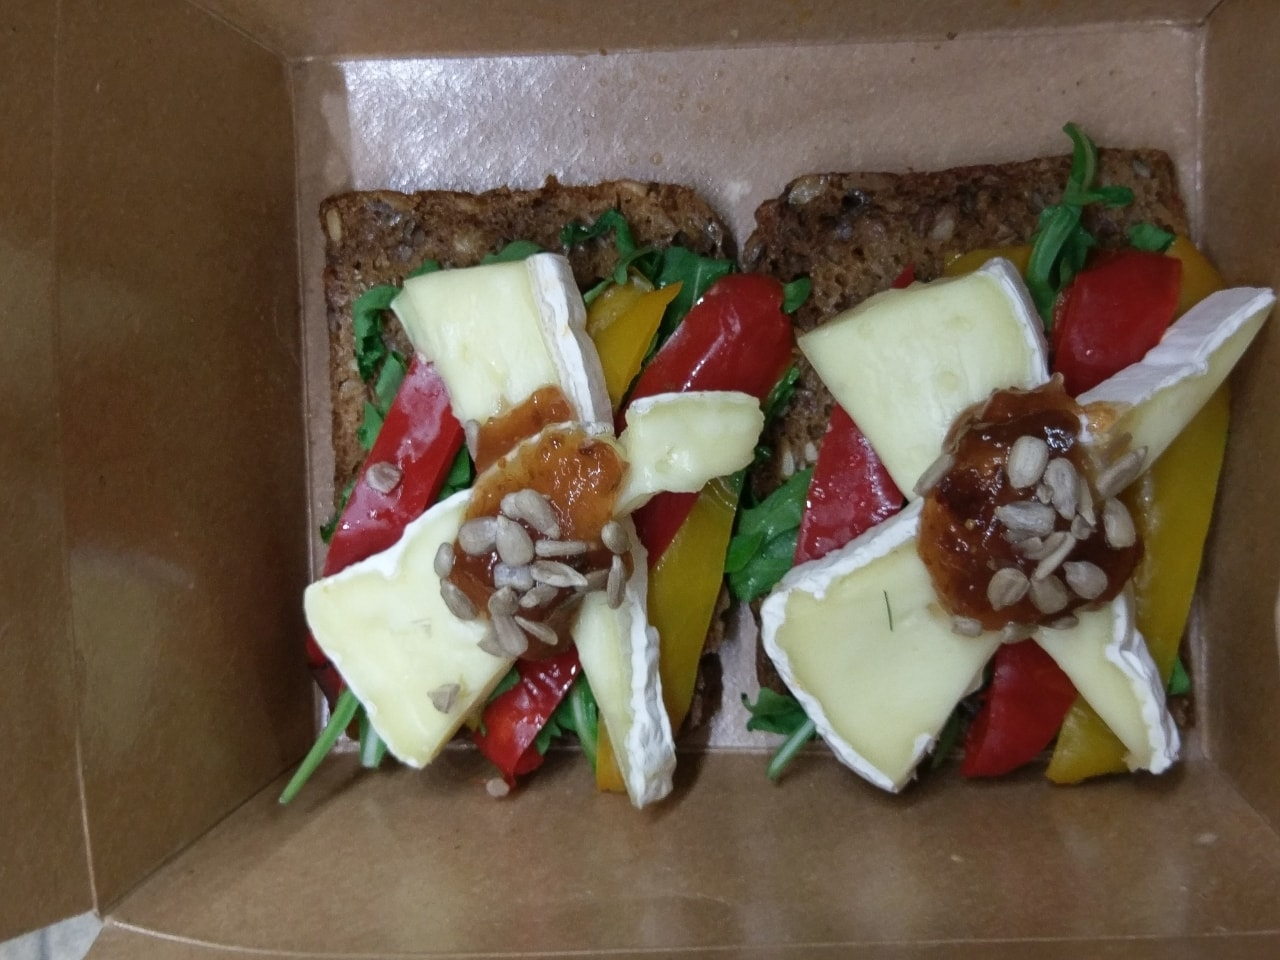 A box of open sandwiches